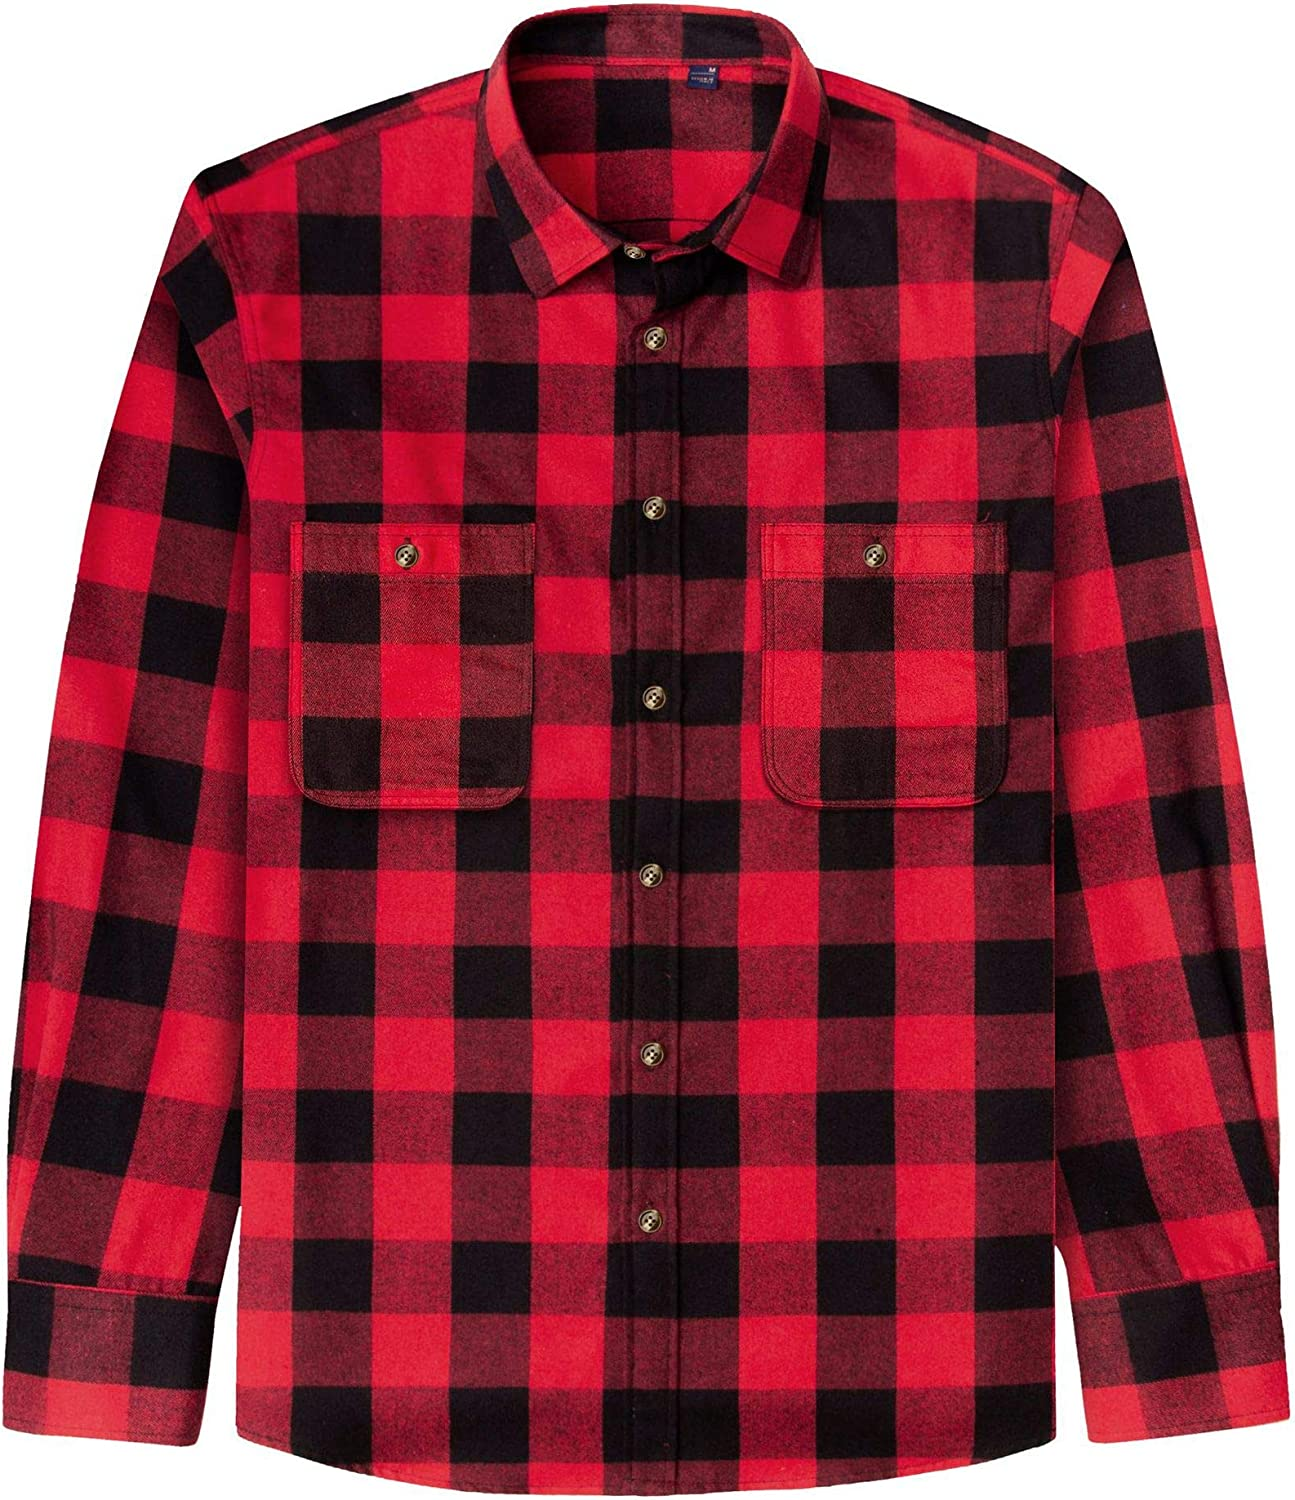 J.VER Men's Flannel Plaid Shirts Long Sleeve Regular Fit Button Down Casual Shirt for Boys: Clothing